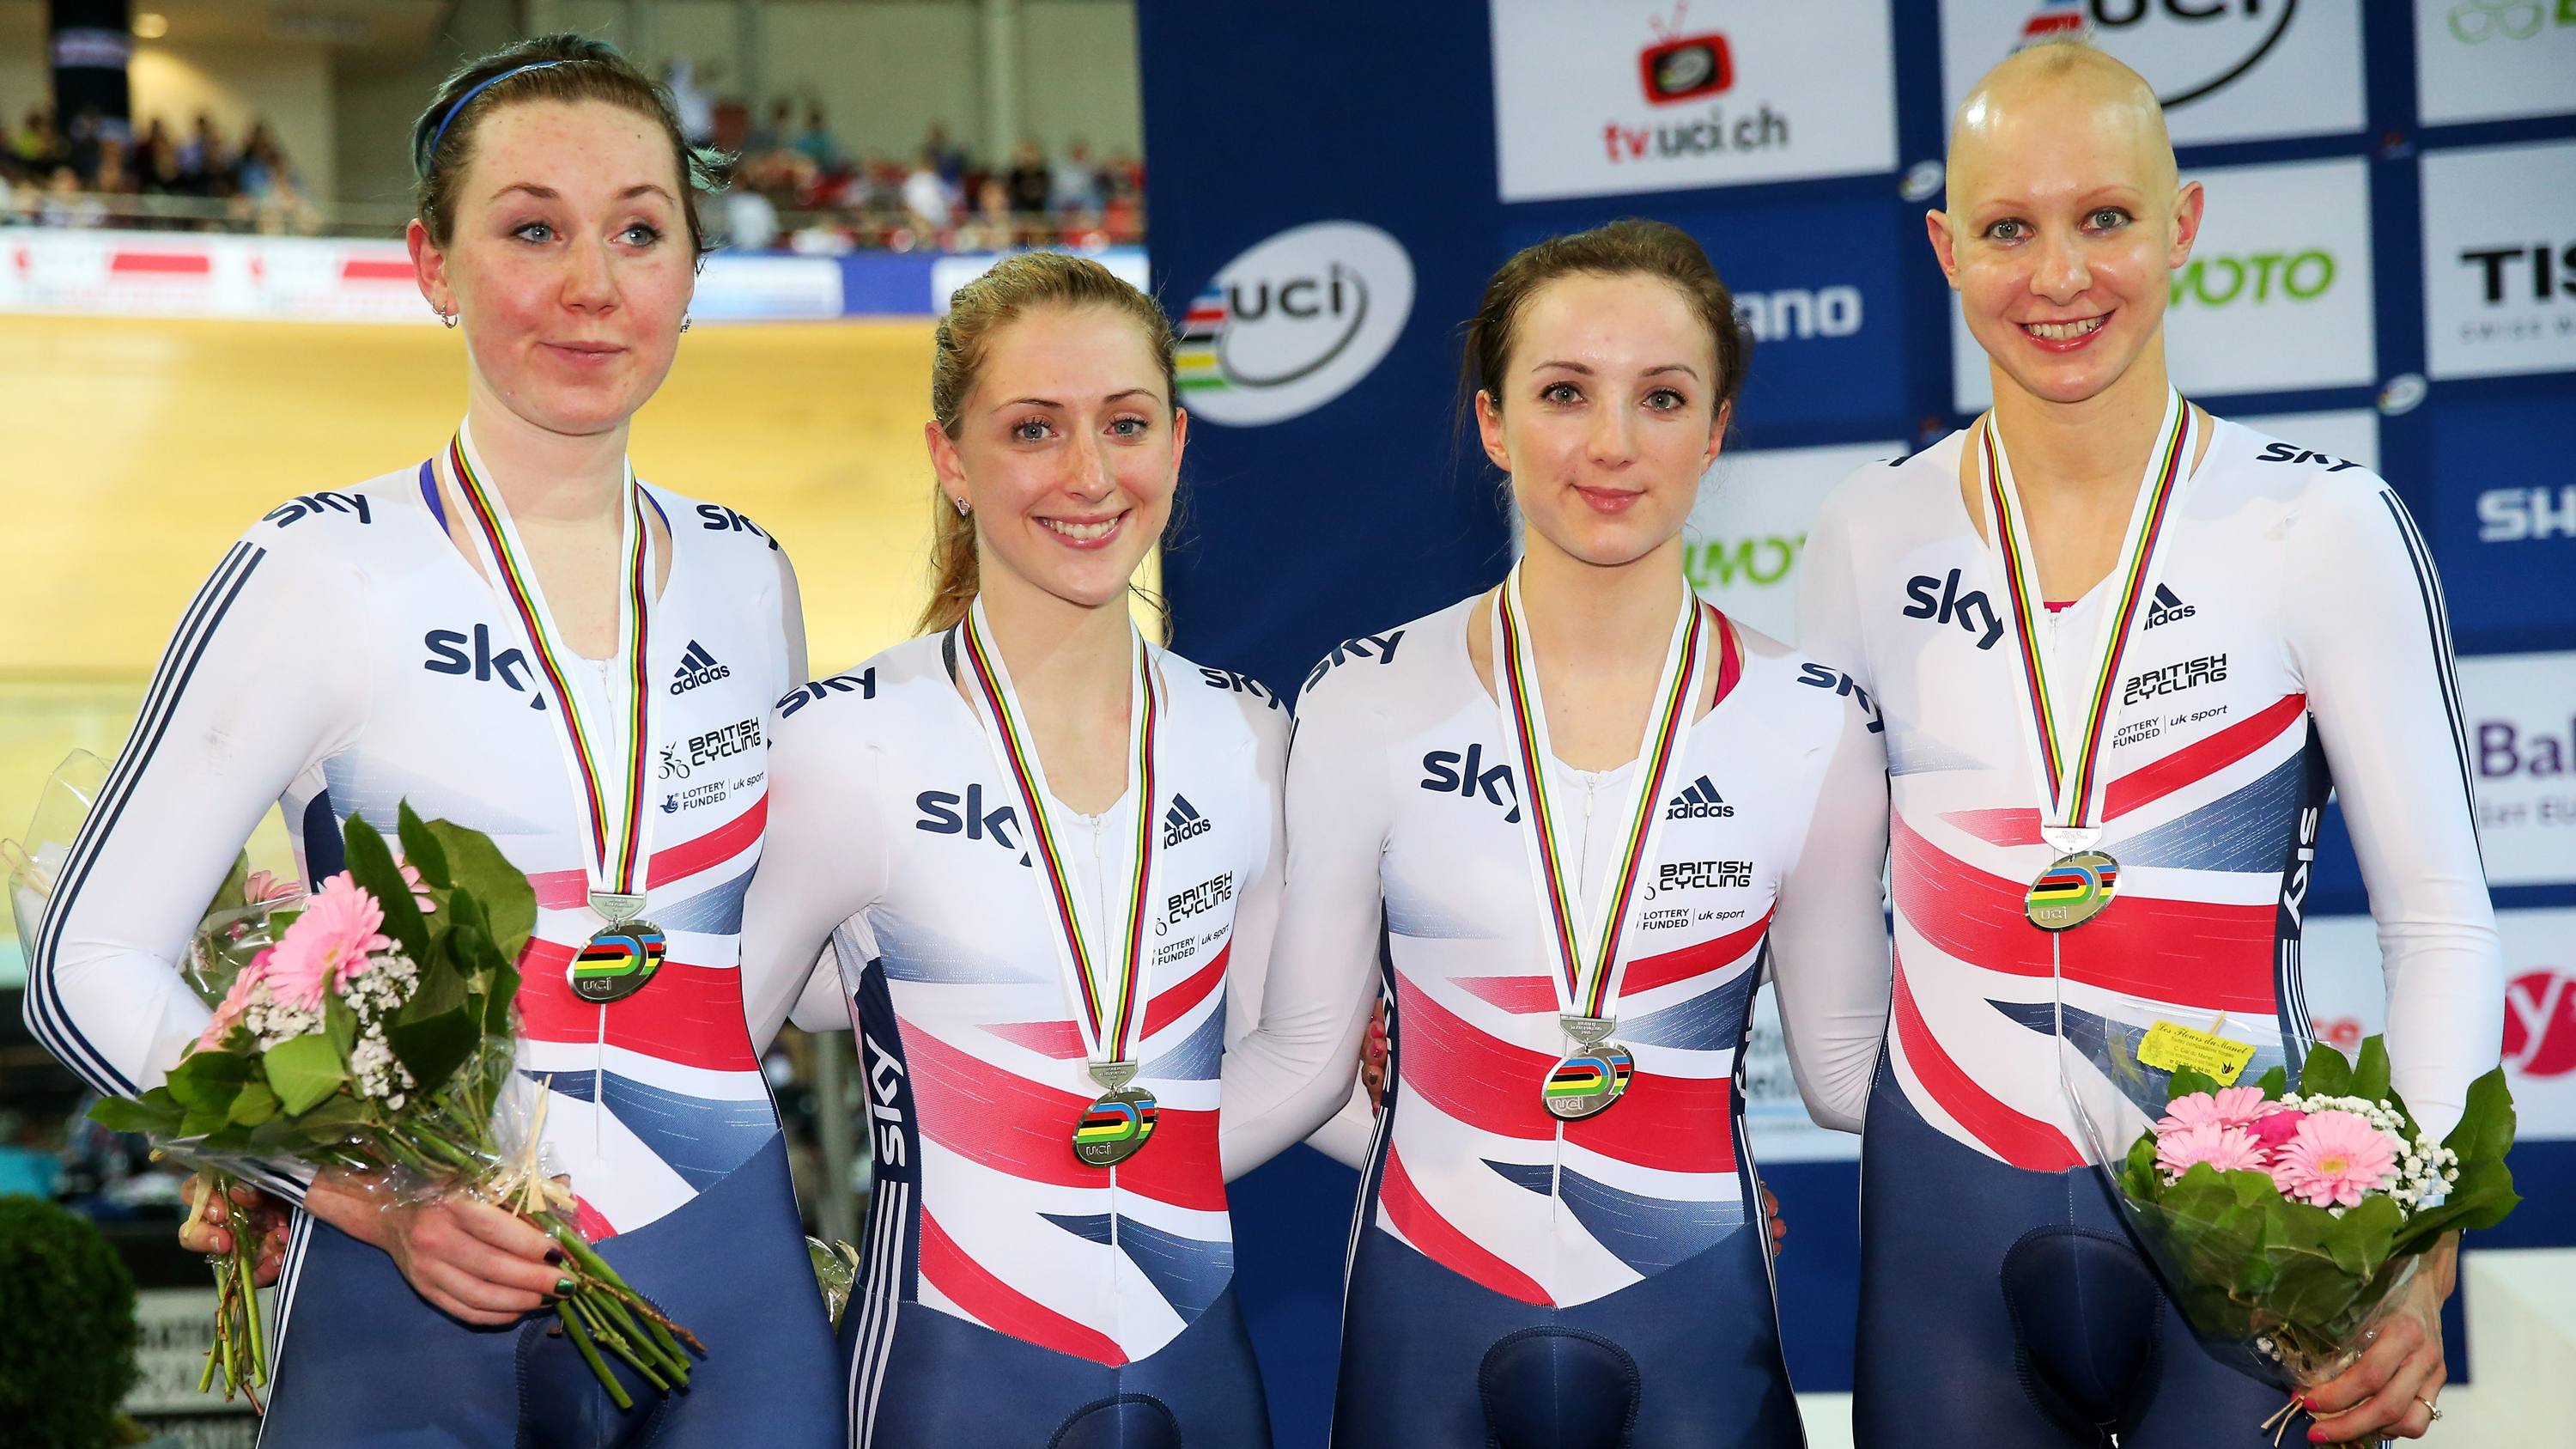 Katie Archibald, Laura Trott, Elinor Barker and Joanna Rowsell with their team pursuit silver medals at the 2015 UCI Track Cycling World Championships in Paris.